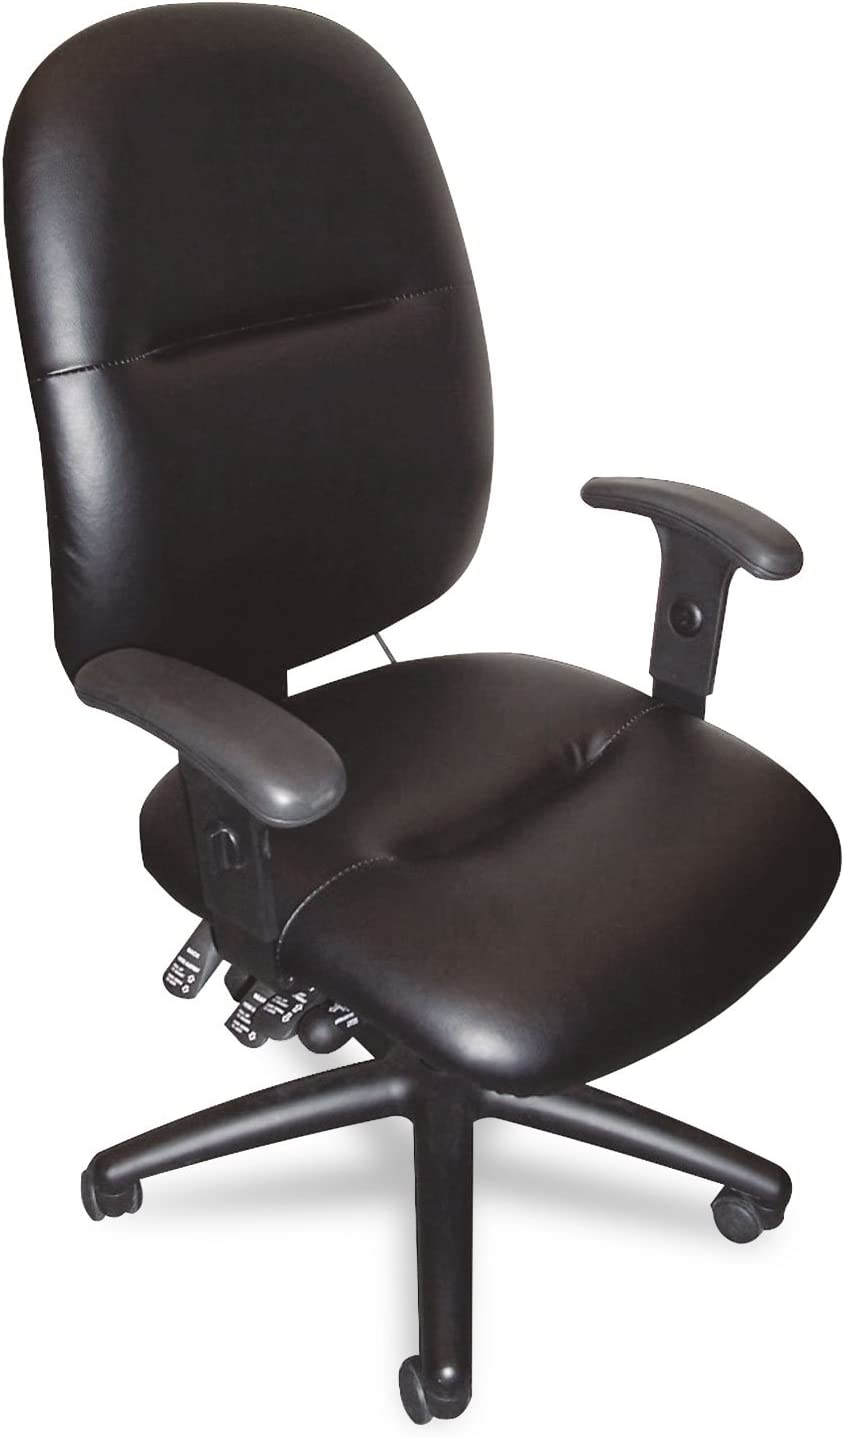 Mayline Comfort 24 Hour High Performance Multi Function Memory Foam Chair in Black Leather